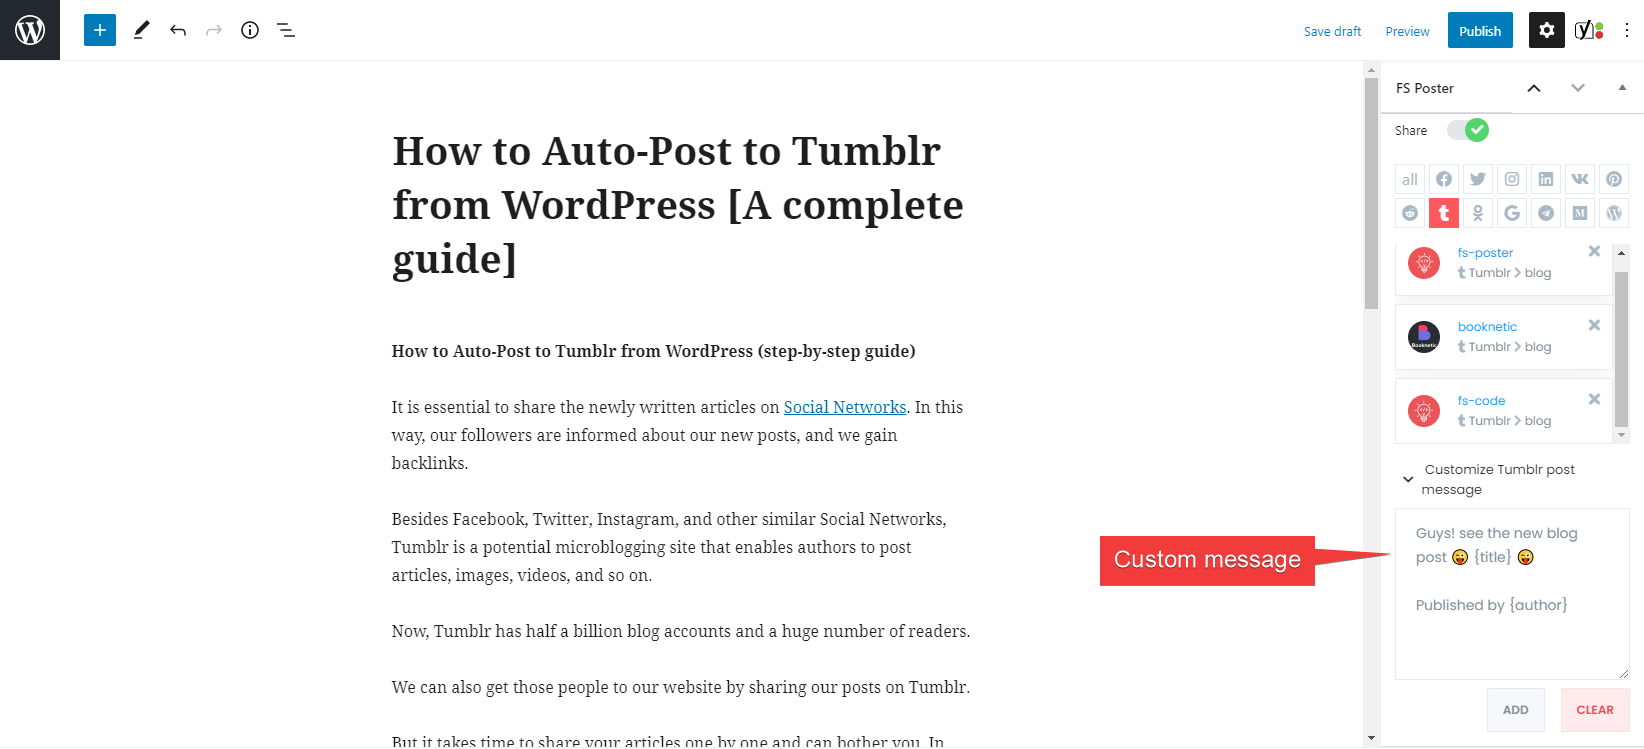 How to Automatically Post to Tumblr from WordPress Using FS Poster